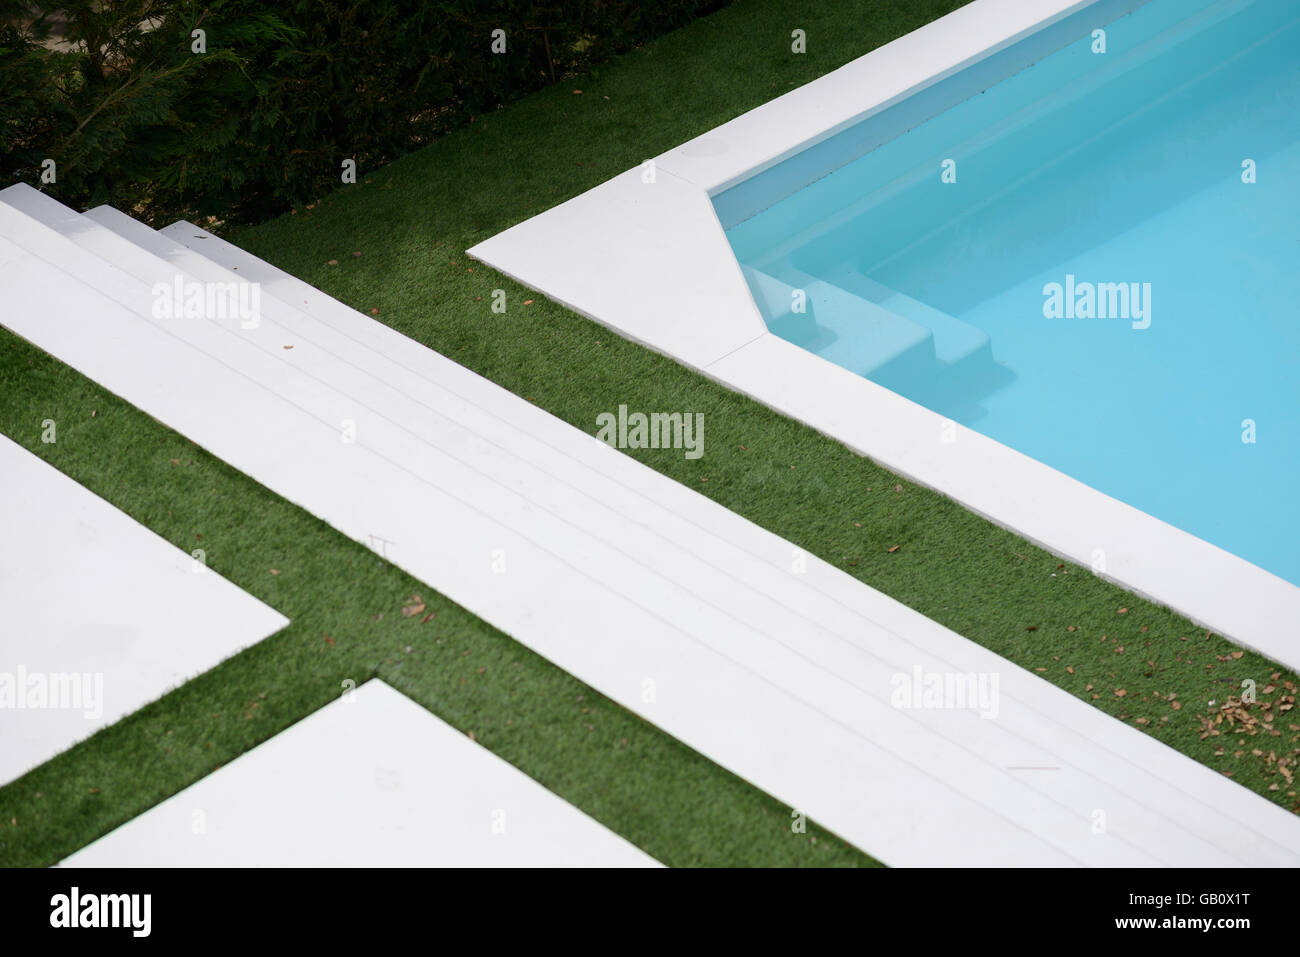 Aerial view of an outdoor swimming pool and lawn Stock Photo